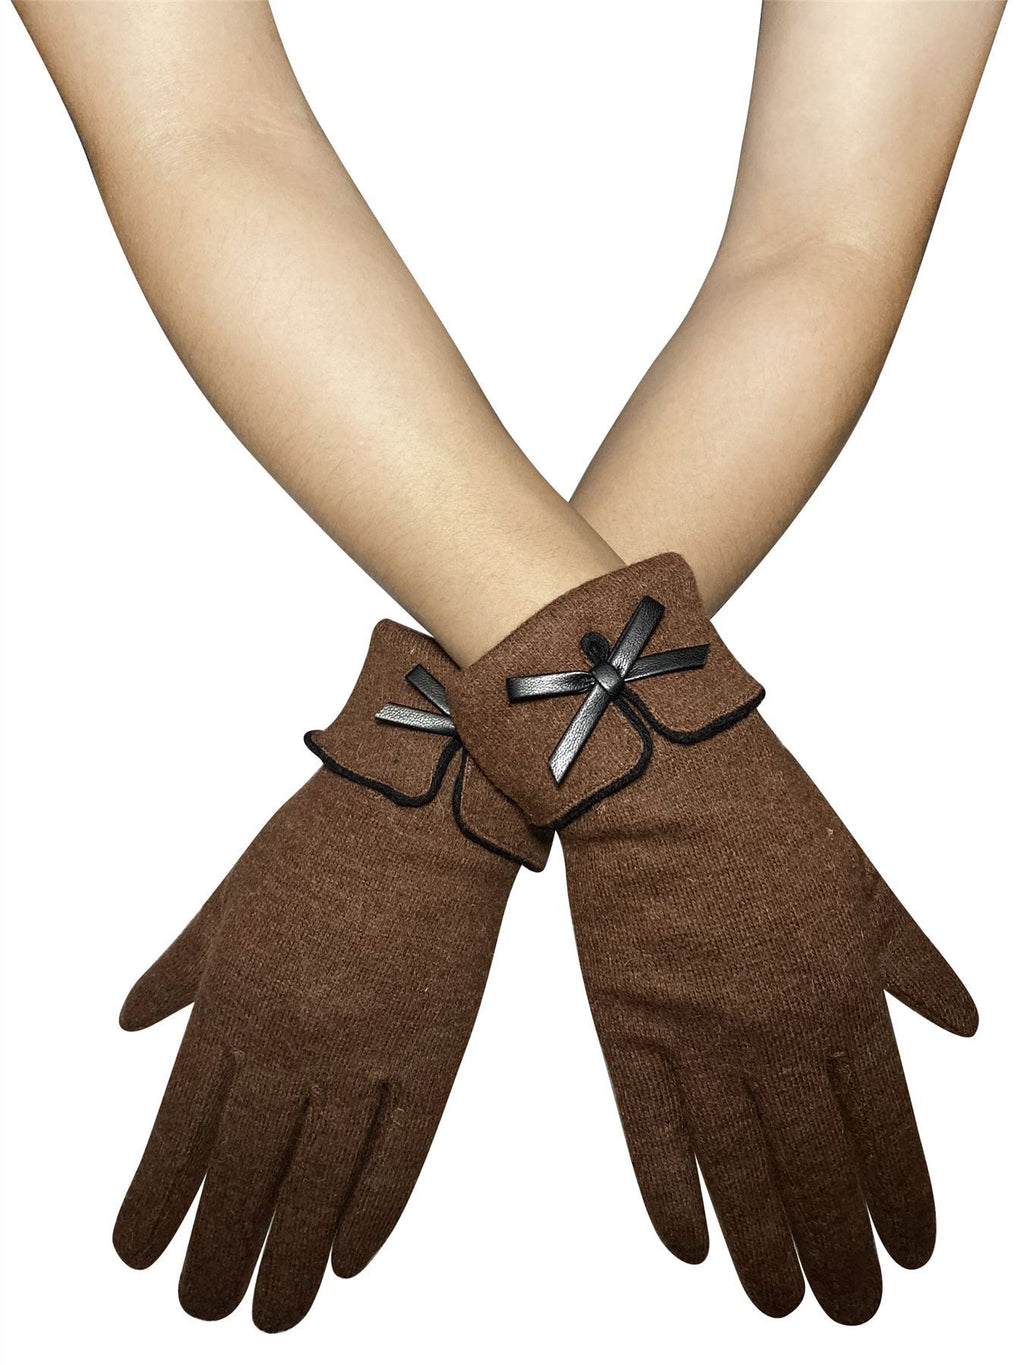 Preppy Style Bow Touchscreen Gloves Brown - The Tulip Tree Chiddingstone